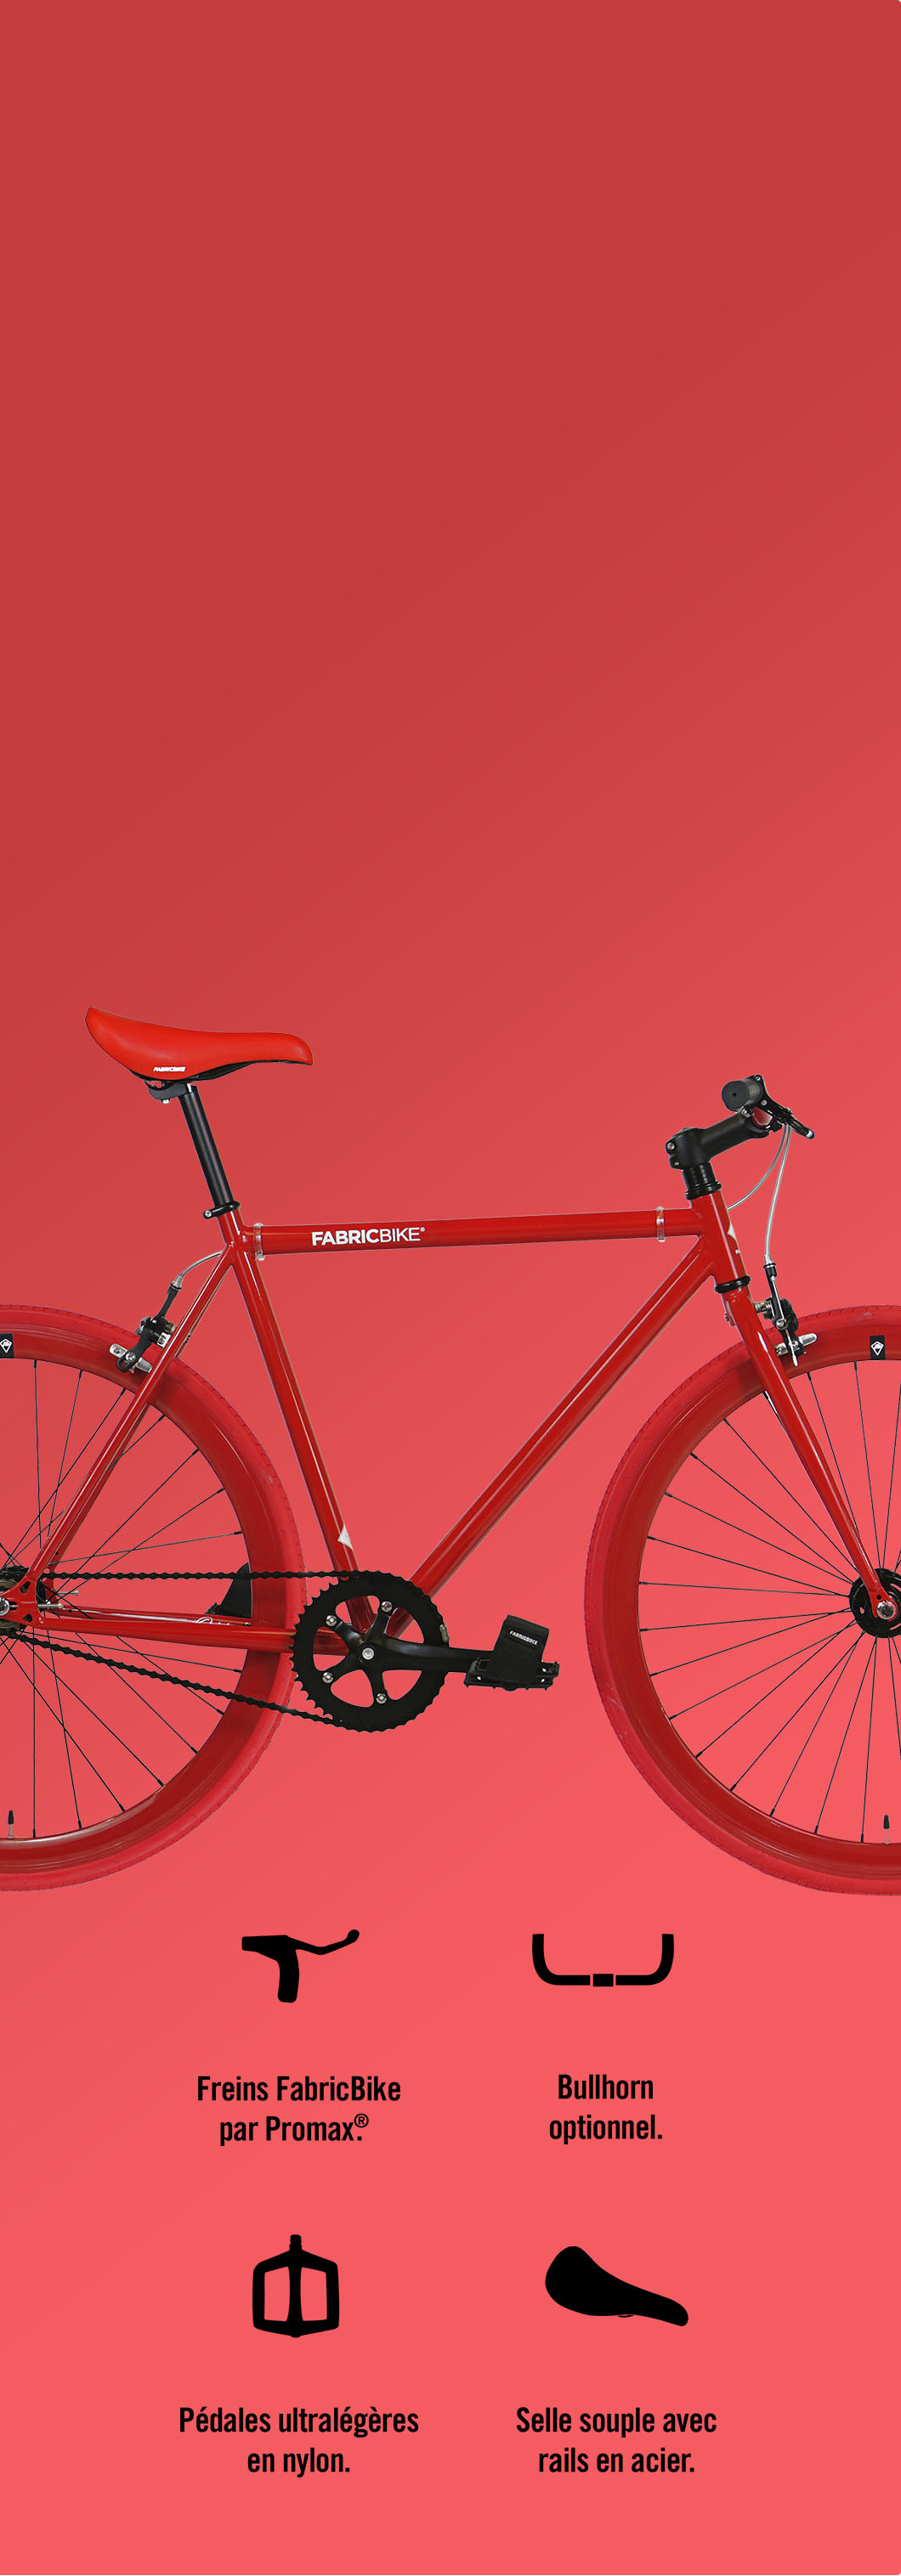 Customize your fixie bike